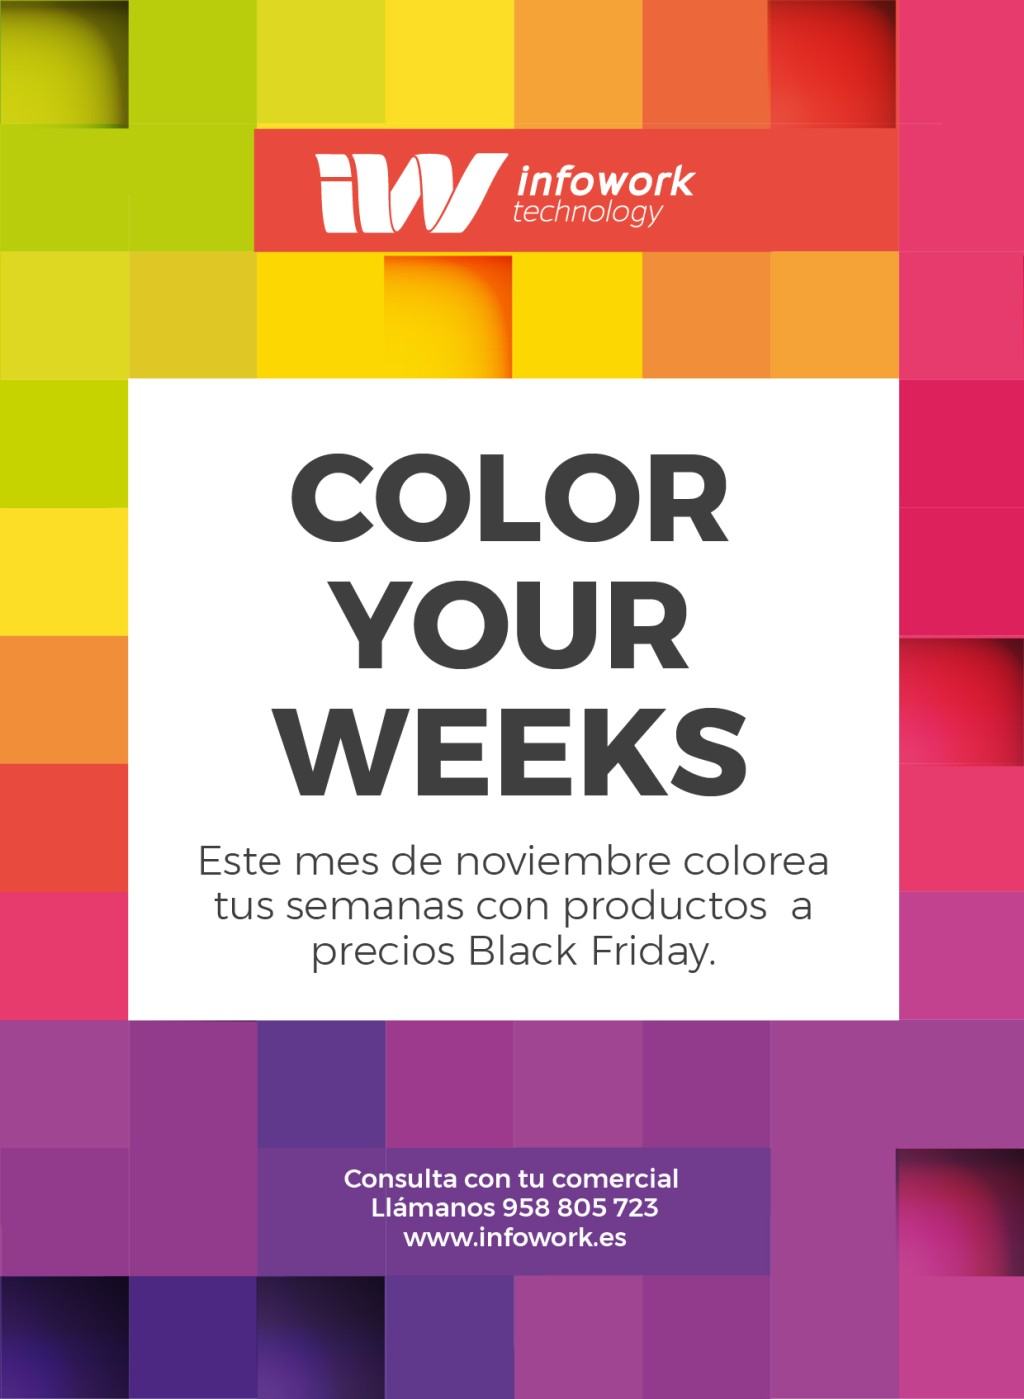 Color your weeks